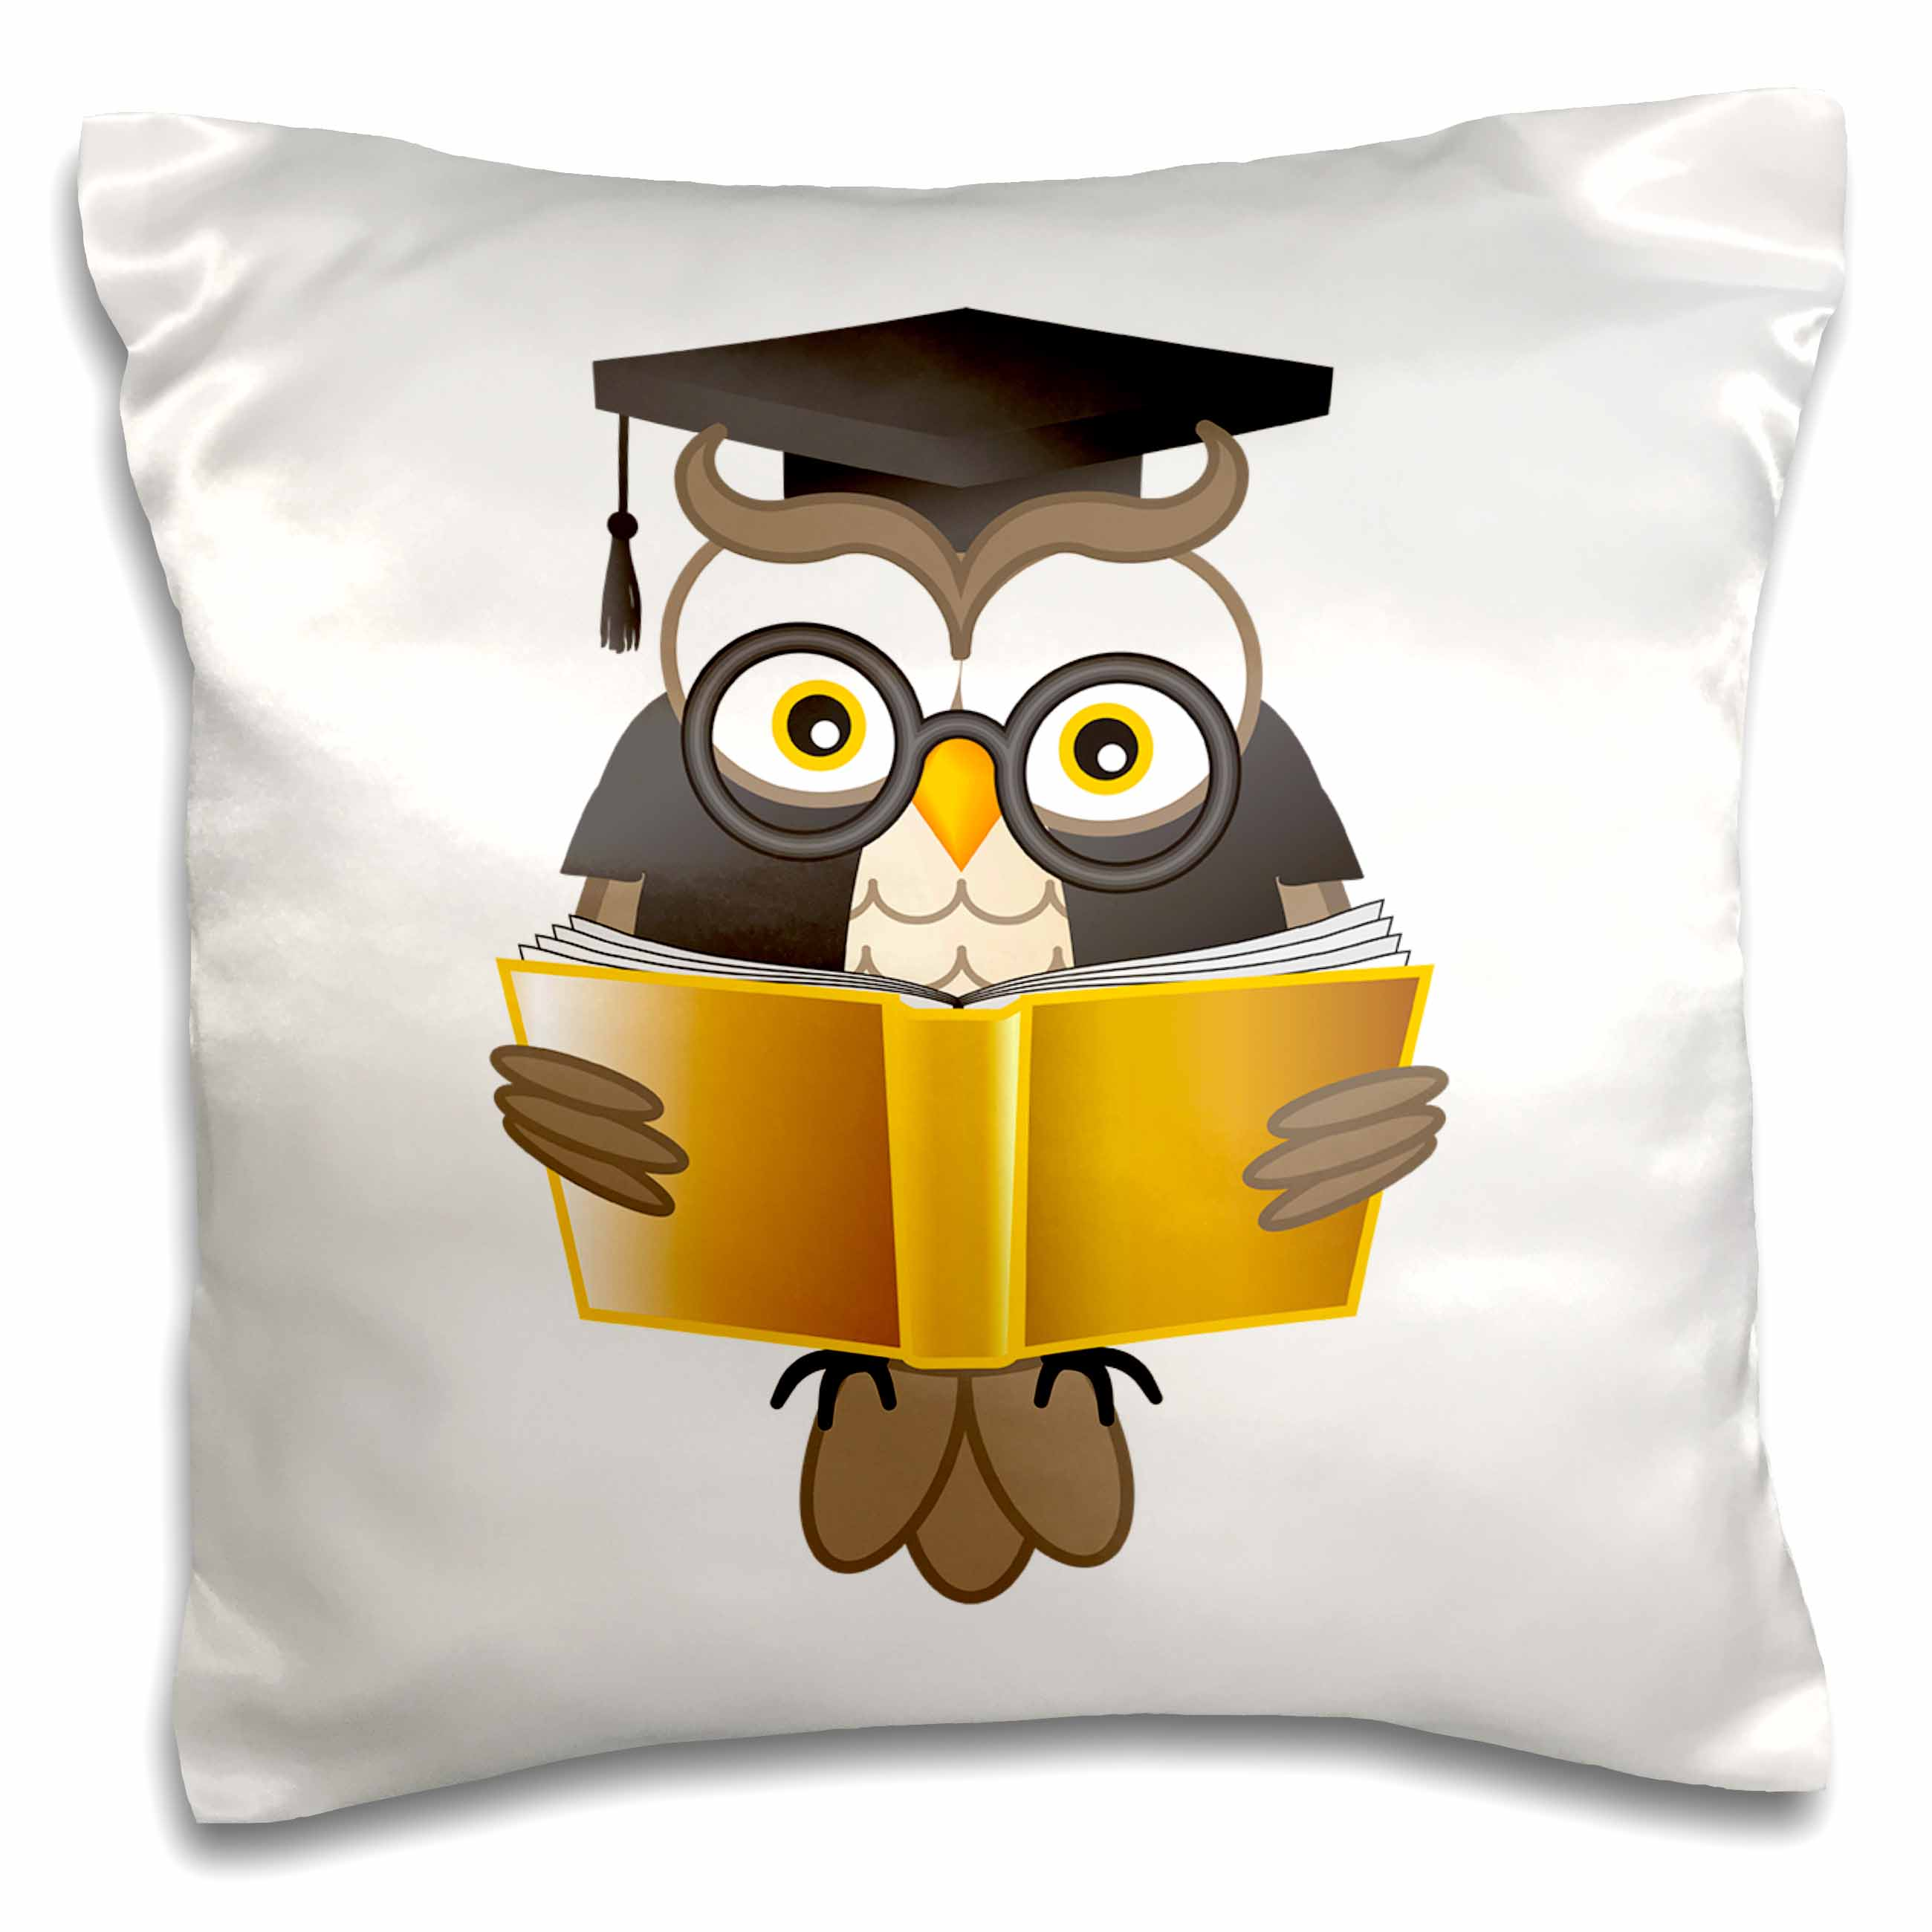 3dRose Wise owl reading a book, Pillow Case, 16 by 16-inch